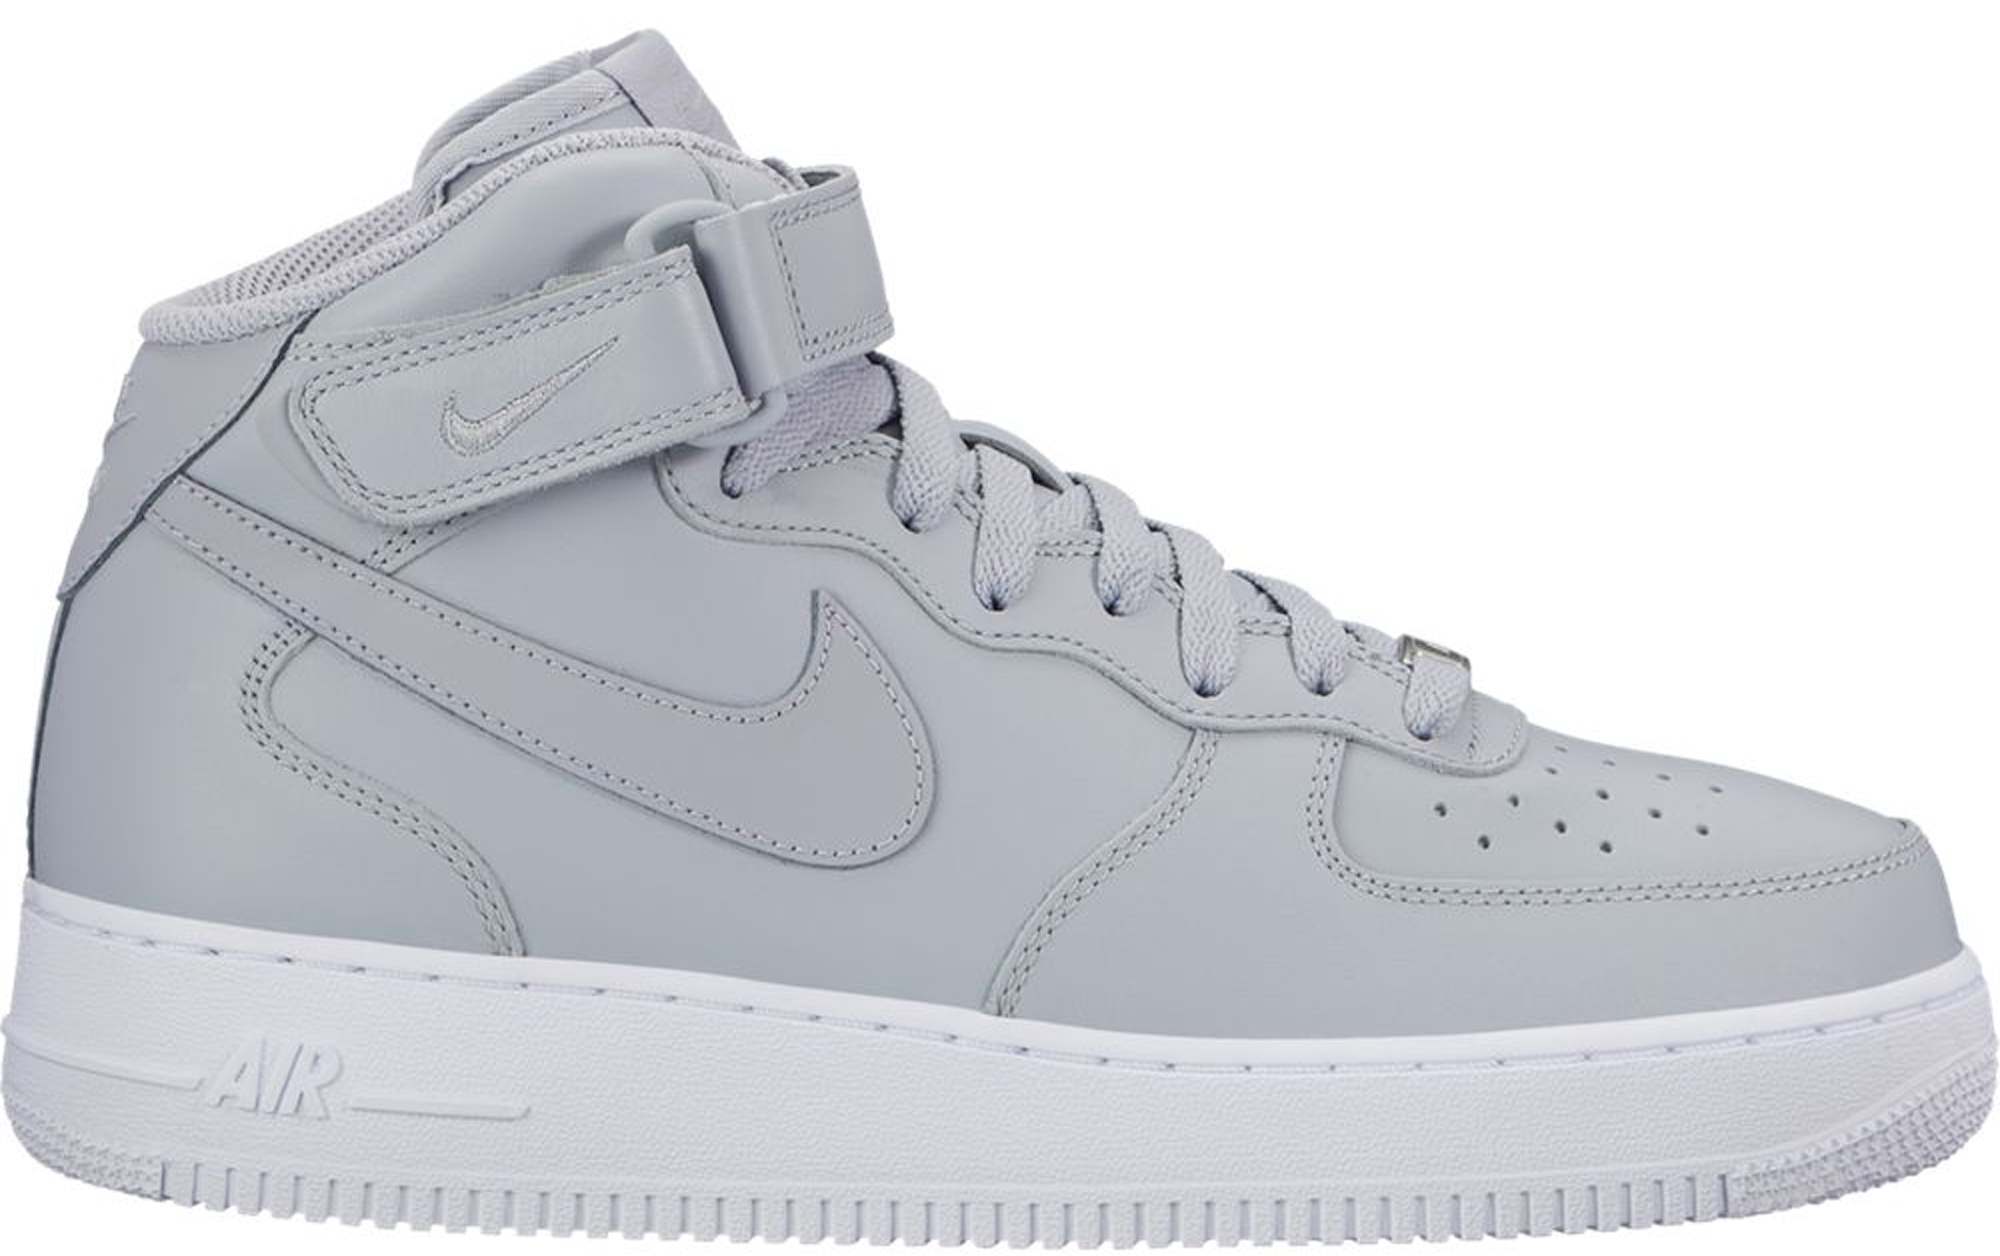 nike air force 1 grey and white